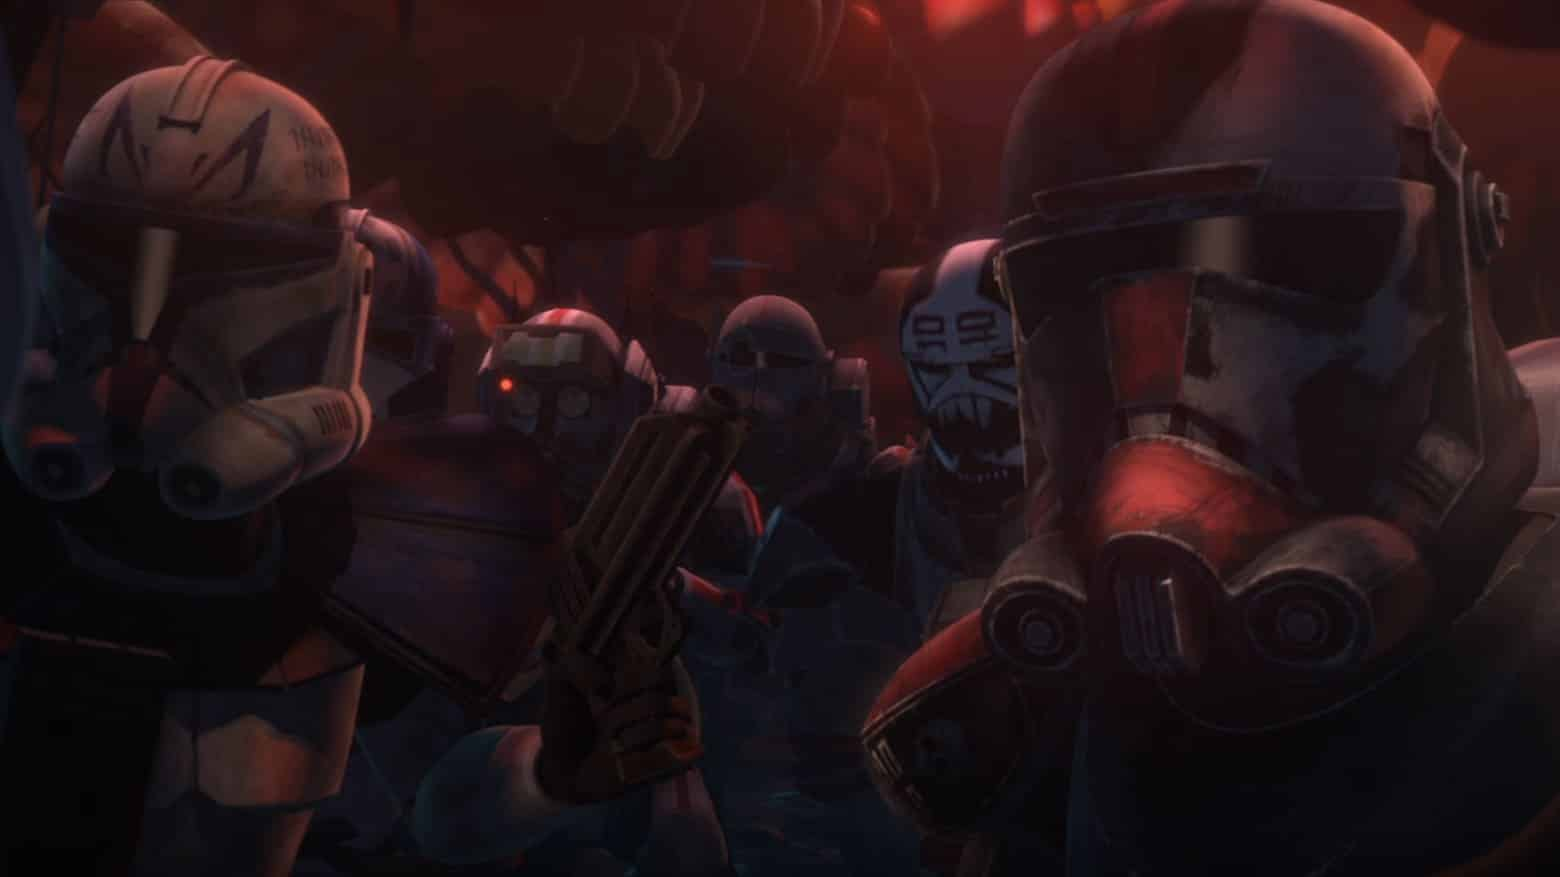 Star Wars: The Clone Wars The Final Season 7 episode 1 review The Bad Batch